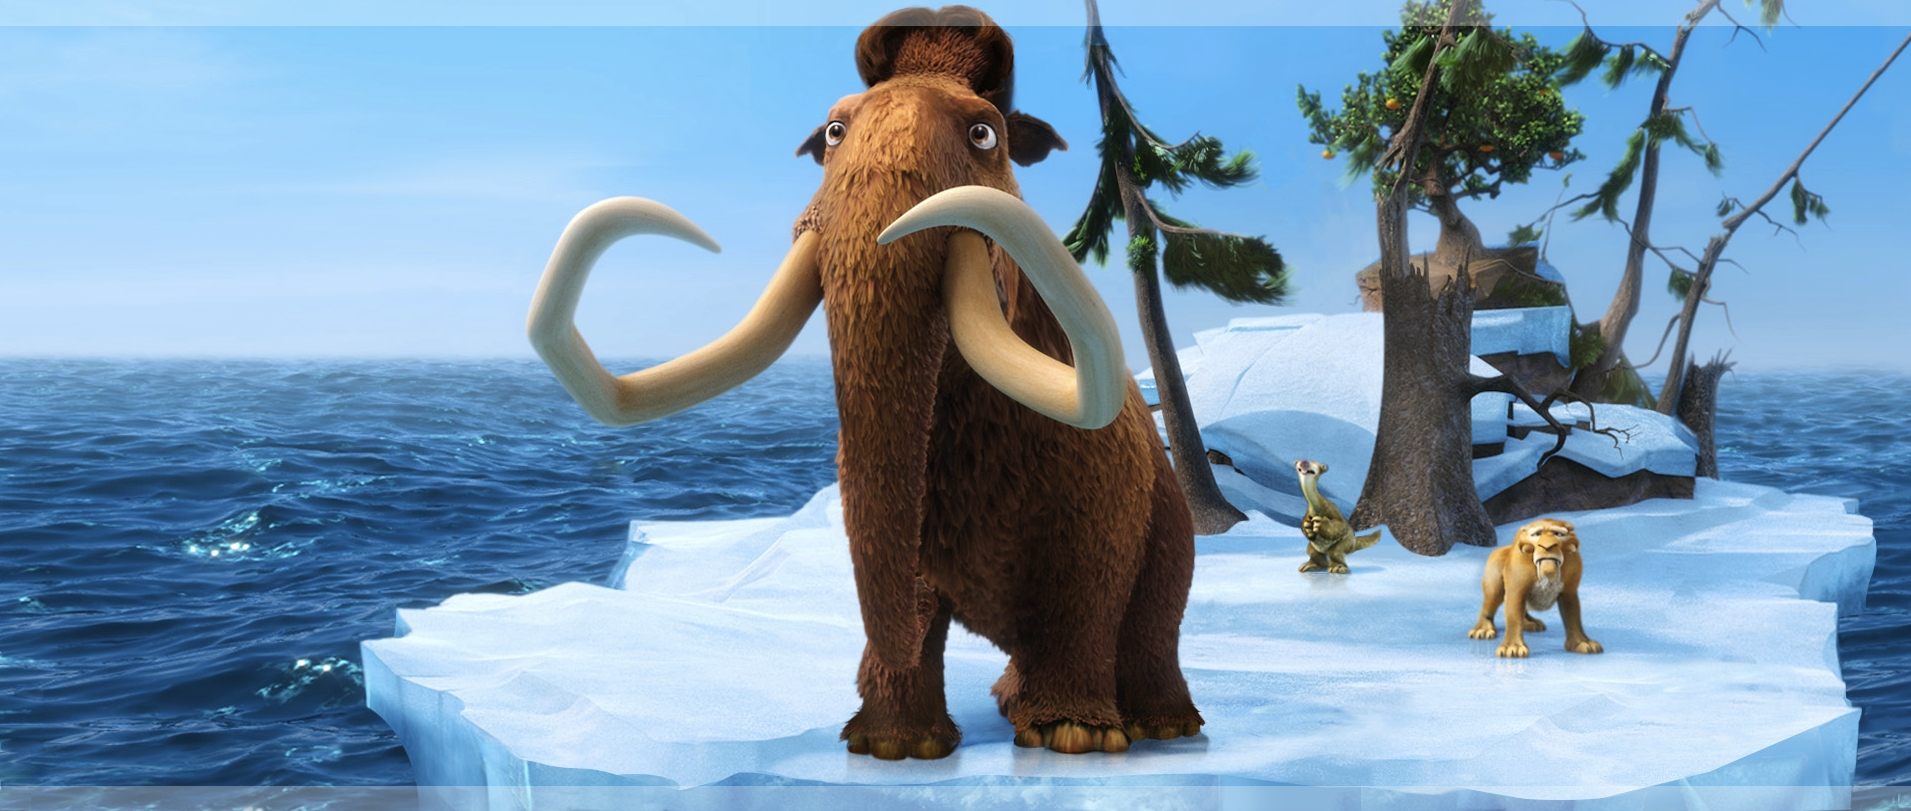 Ice Age Wallpapers High Quality | Download Free